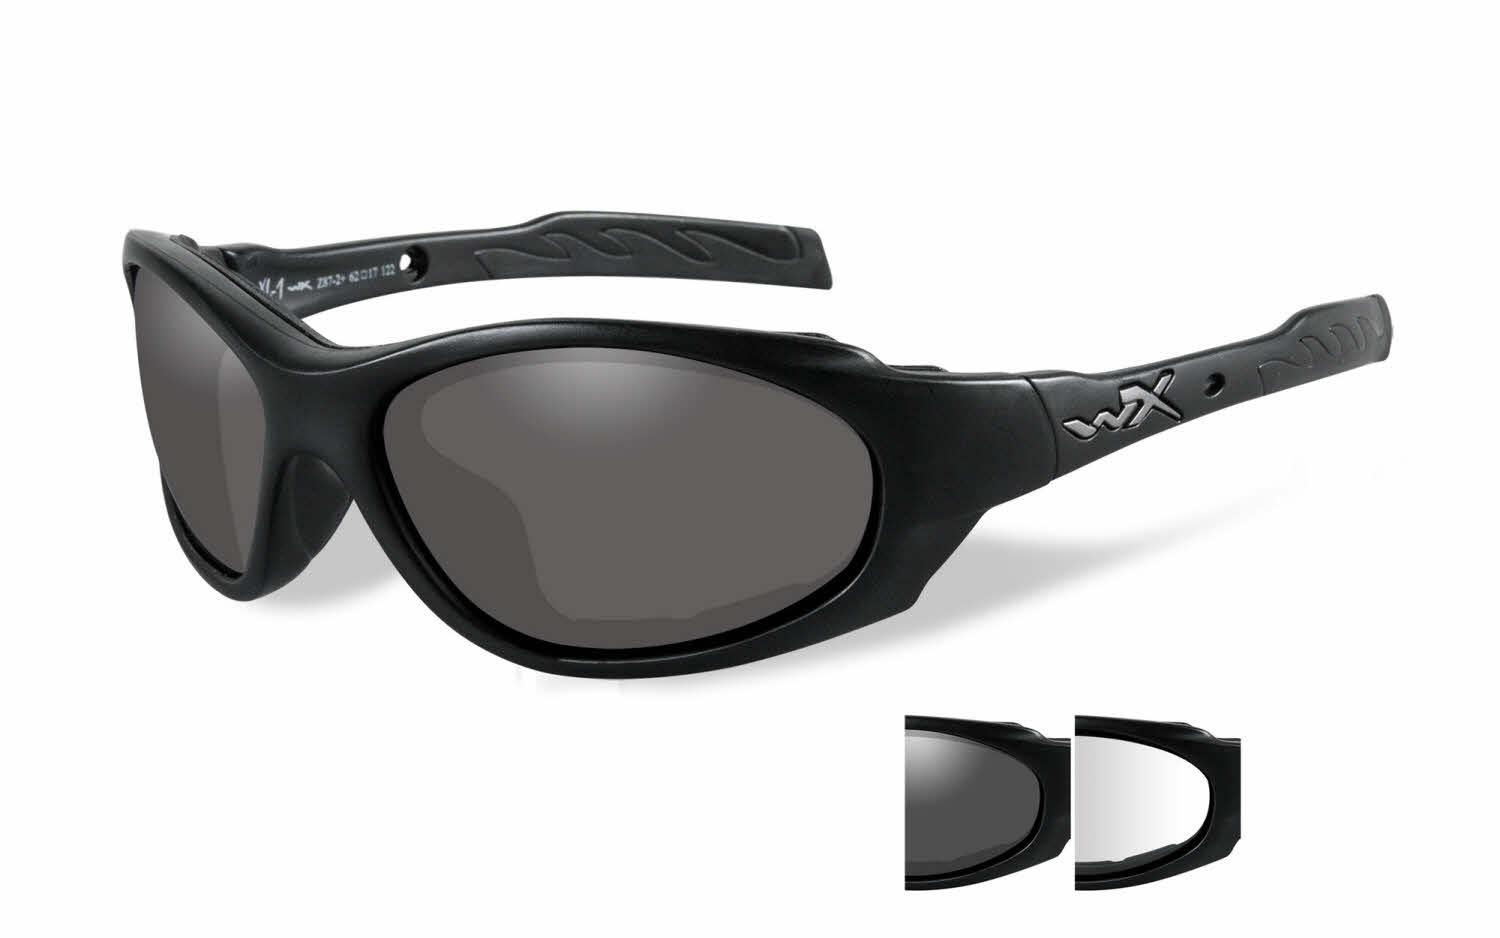 a313b9dfeed Wiley X XL-1 Advanced Sunglasses